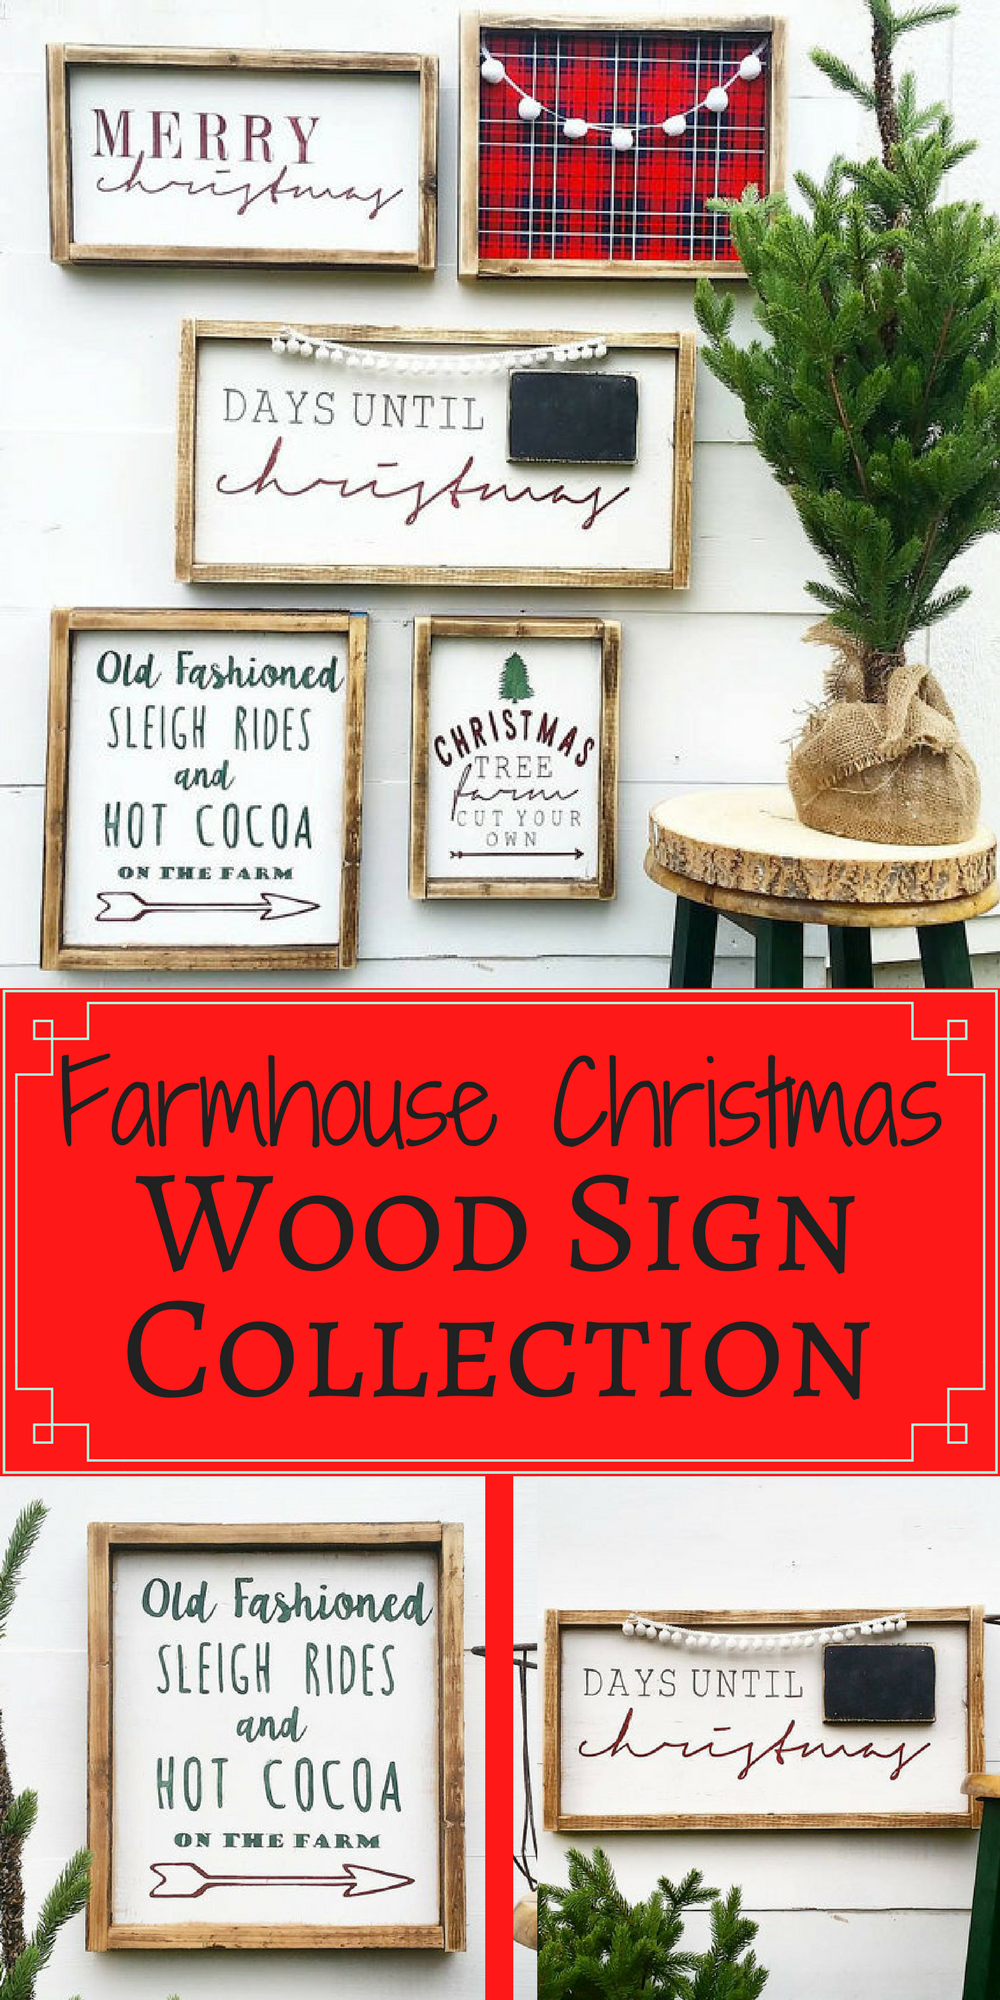 Farmhouse Christmas Wood Sign Collection Check Out These Adorable Rustic Farmhouse Framed Wo Rustic Holiday Decor Christmas Signs Wood Christmas Wooden Signs